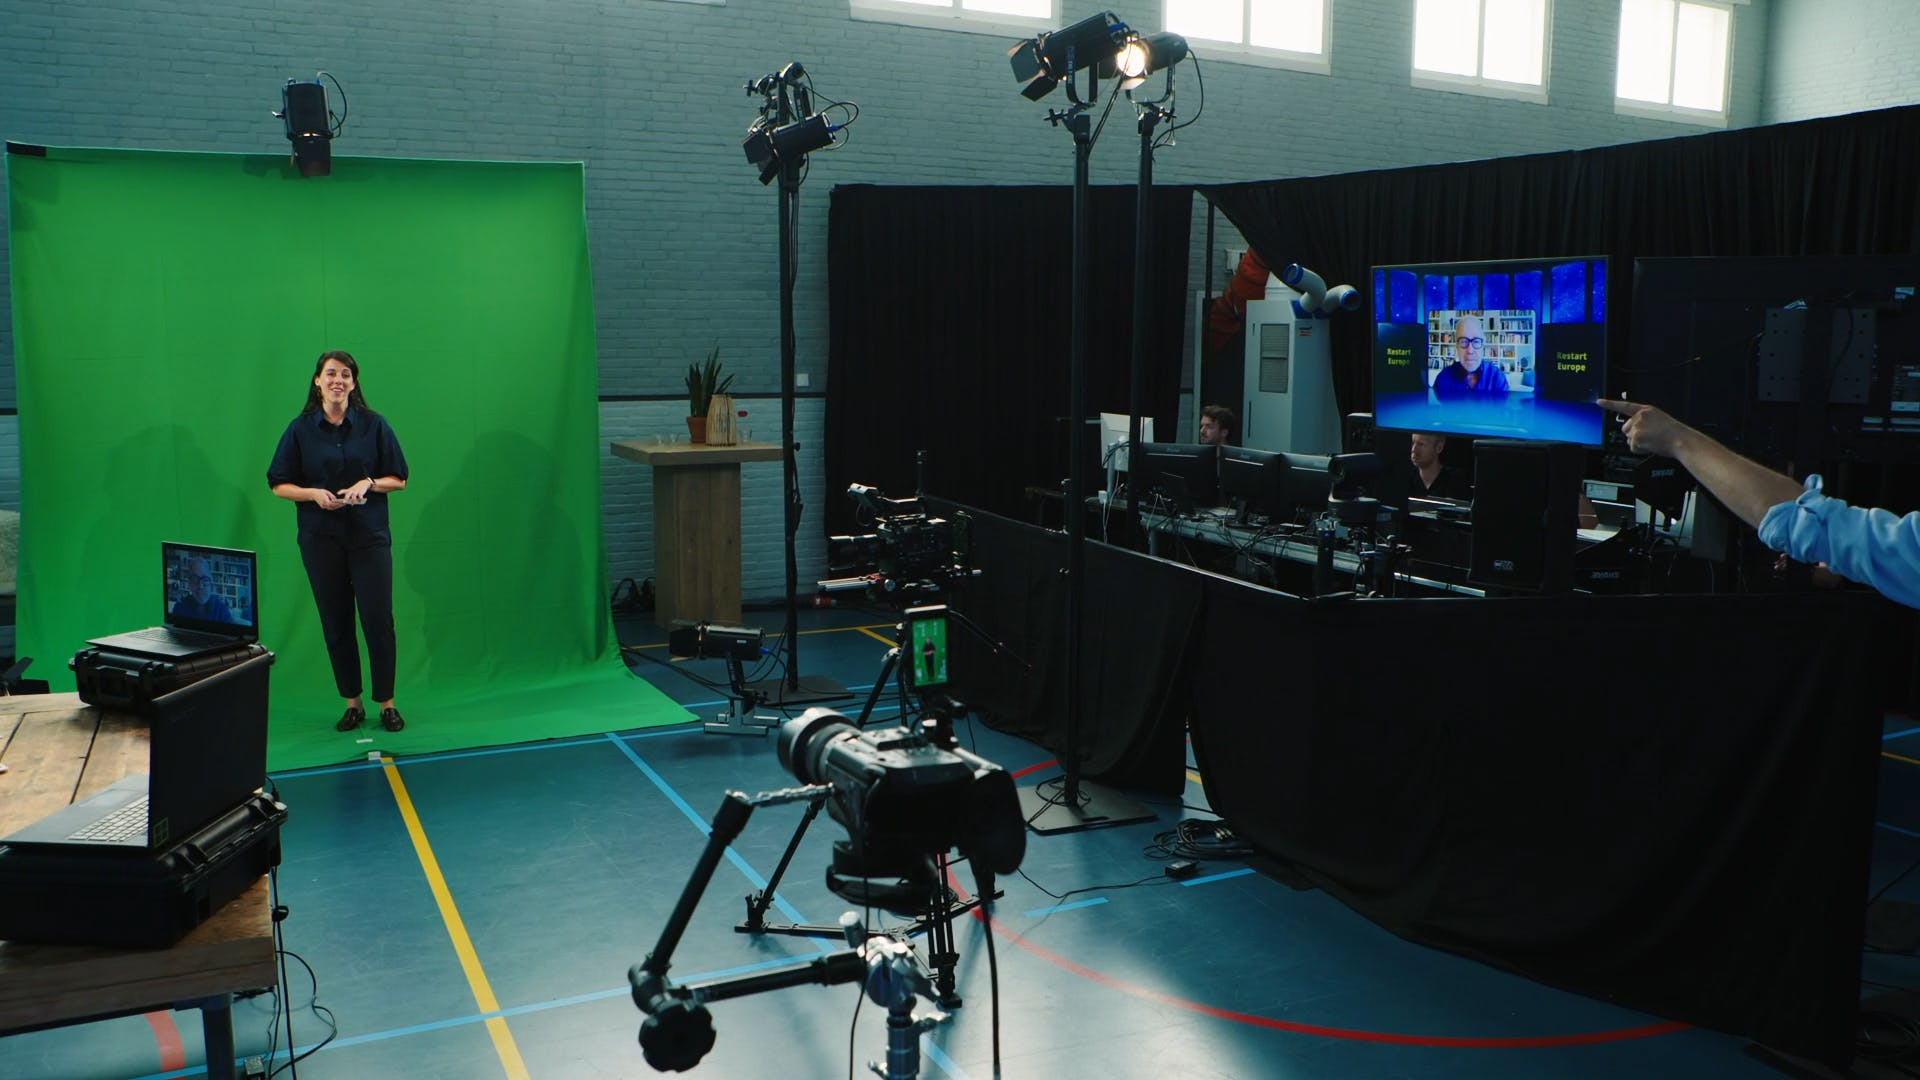 Green screen virtuele studio